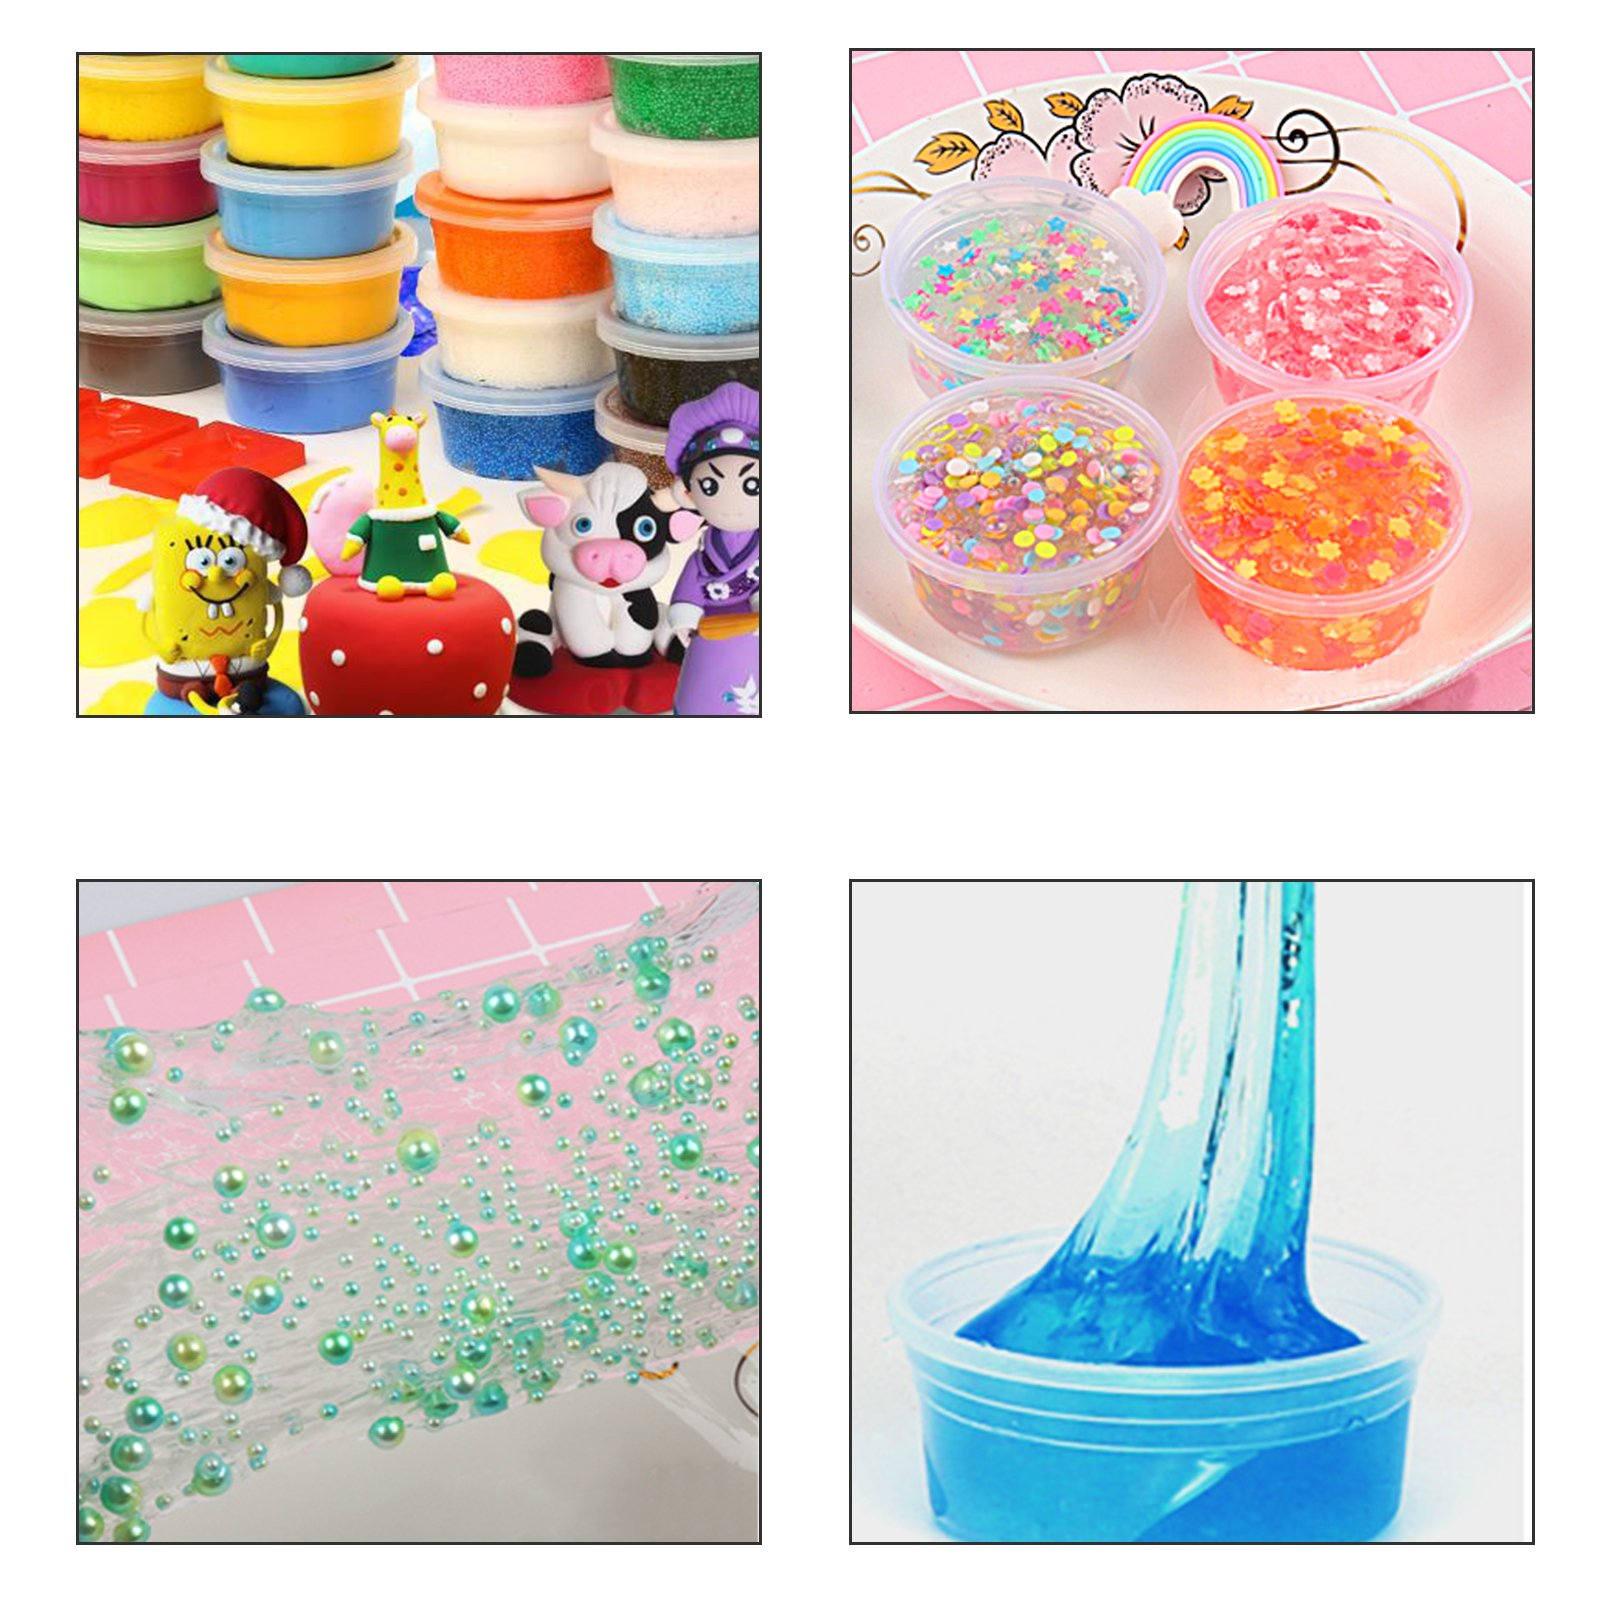 LANMOK Slime Containers, 36 Pack 20g Foam Ball Containers Plastic Storage Jars with Lids,8 Pcs Slime Tools for Art DIY Crafts